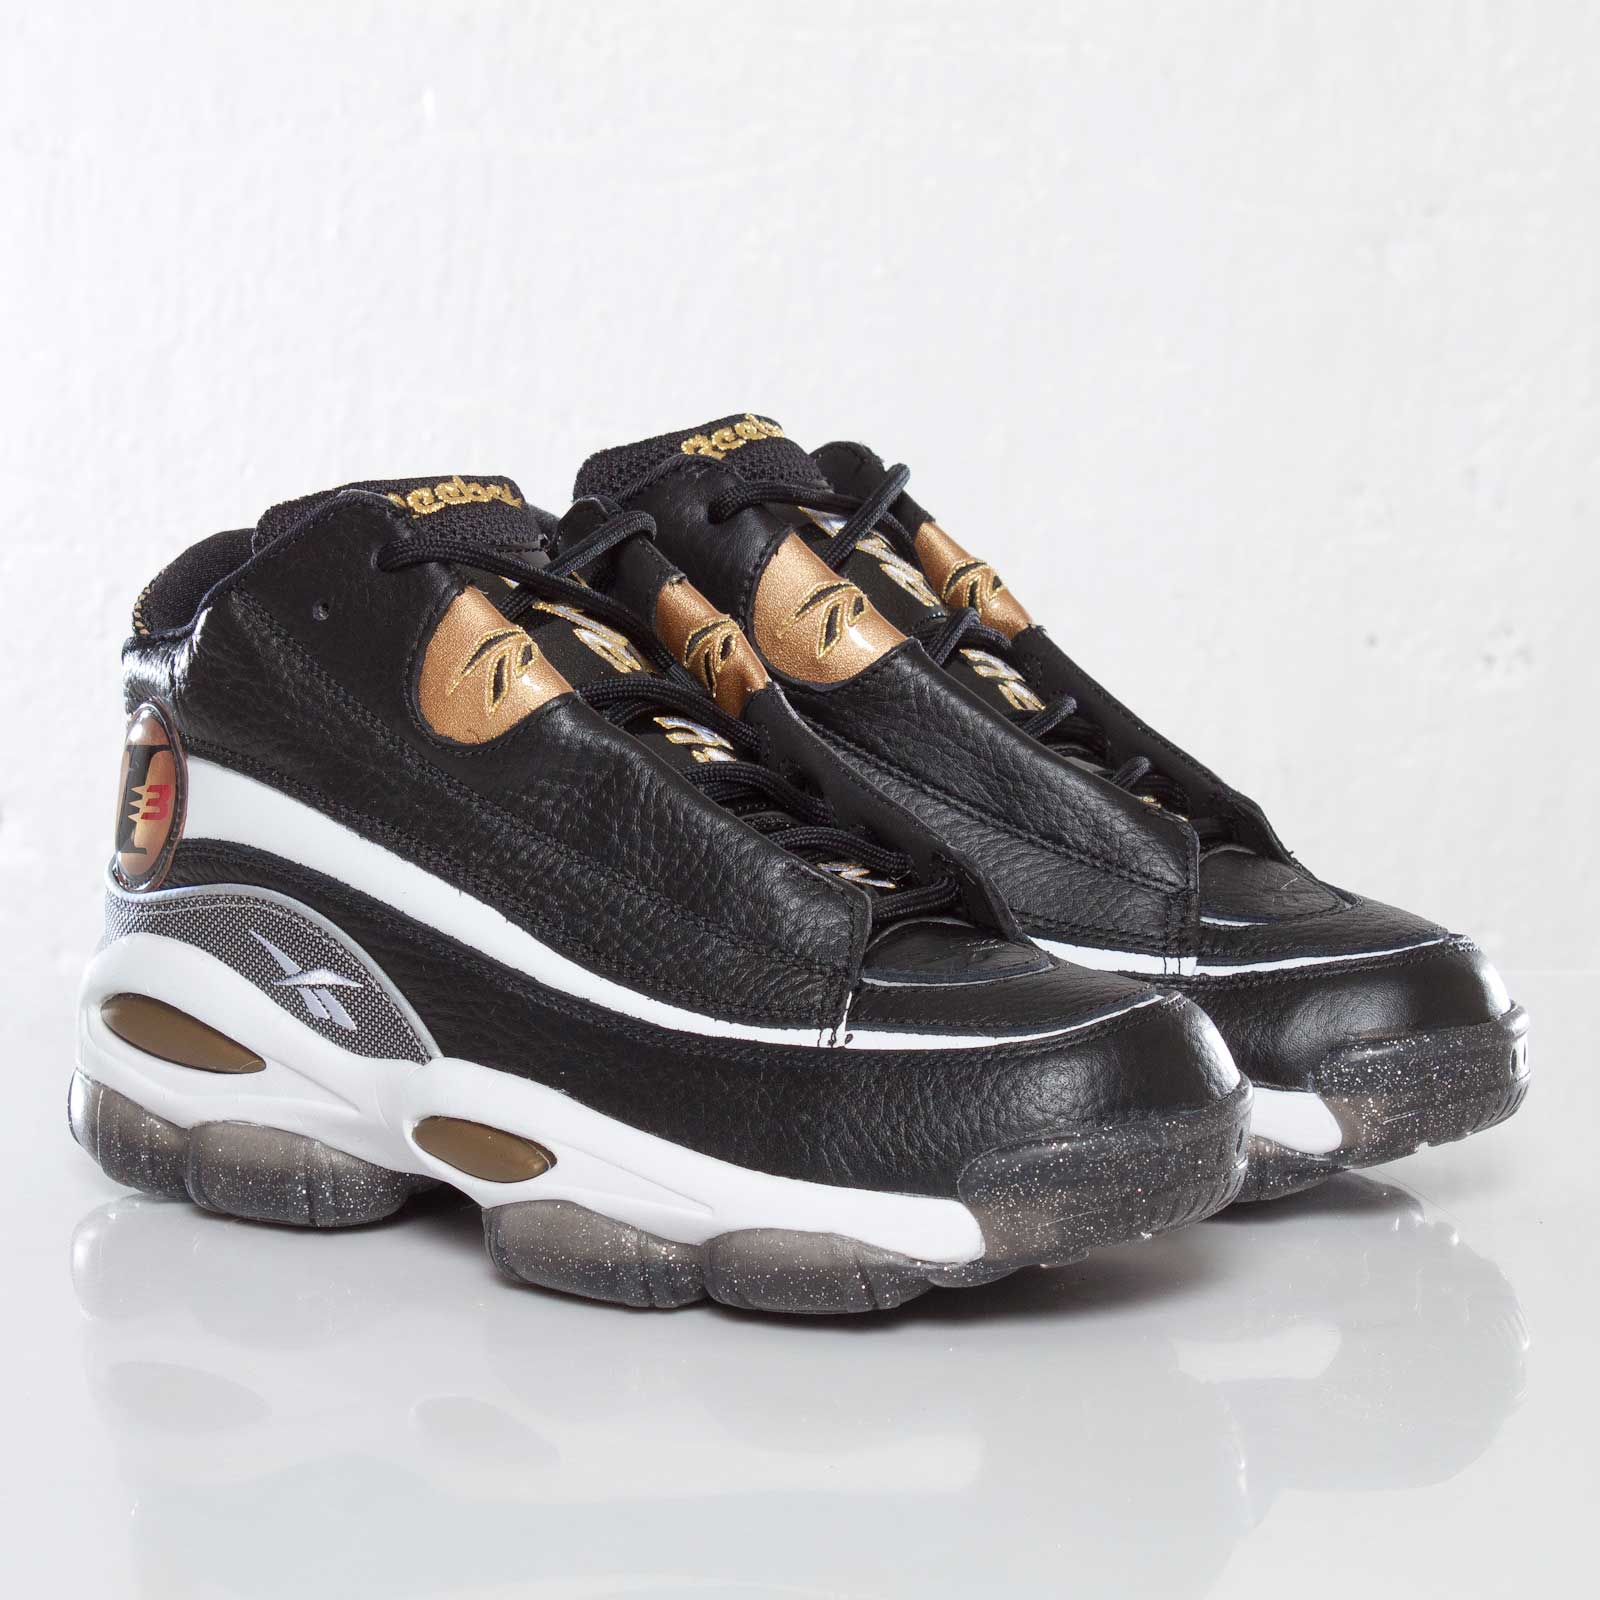 b379f7a93eec Reebok The Answer DMX 10 - 39577 - Sneakersnstuff